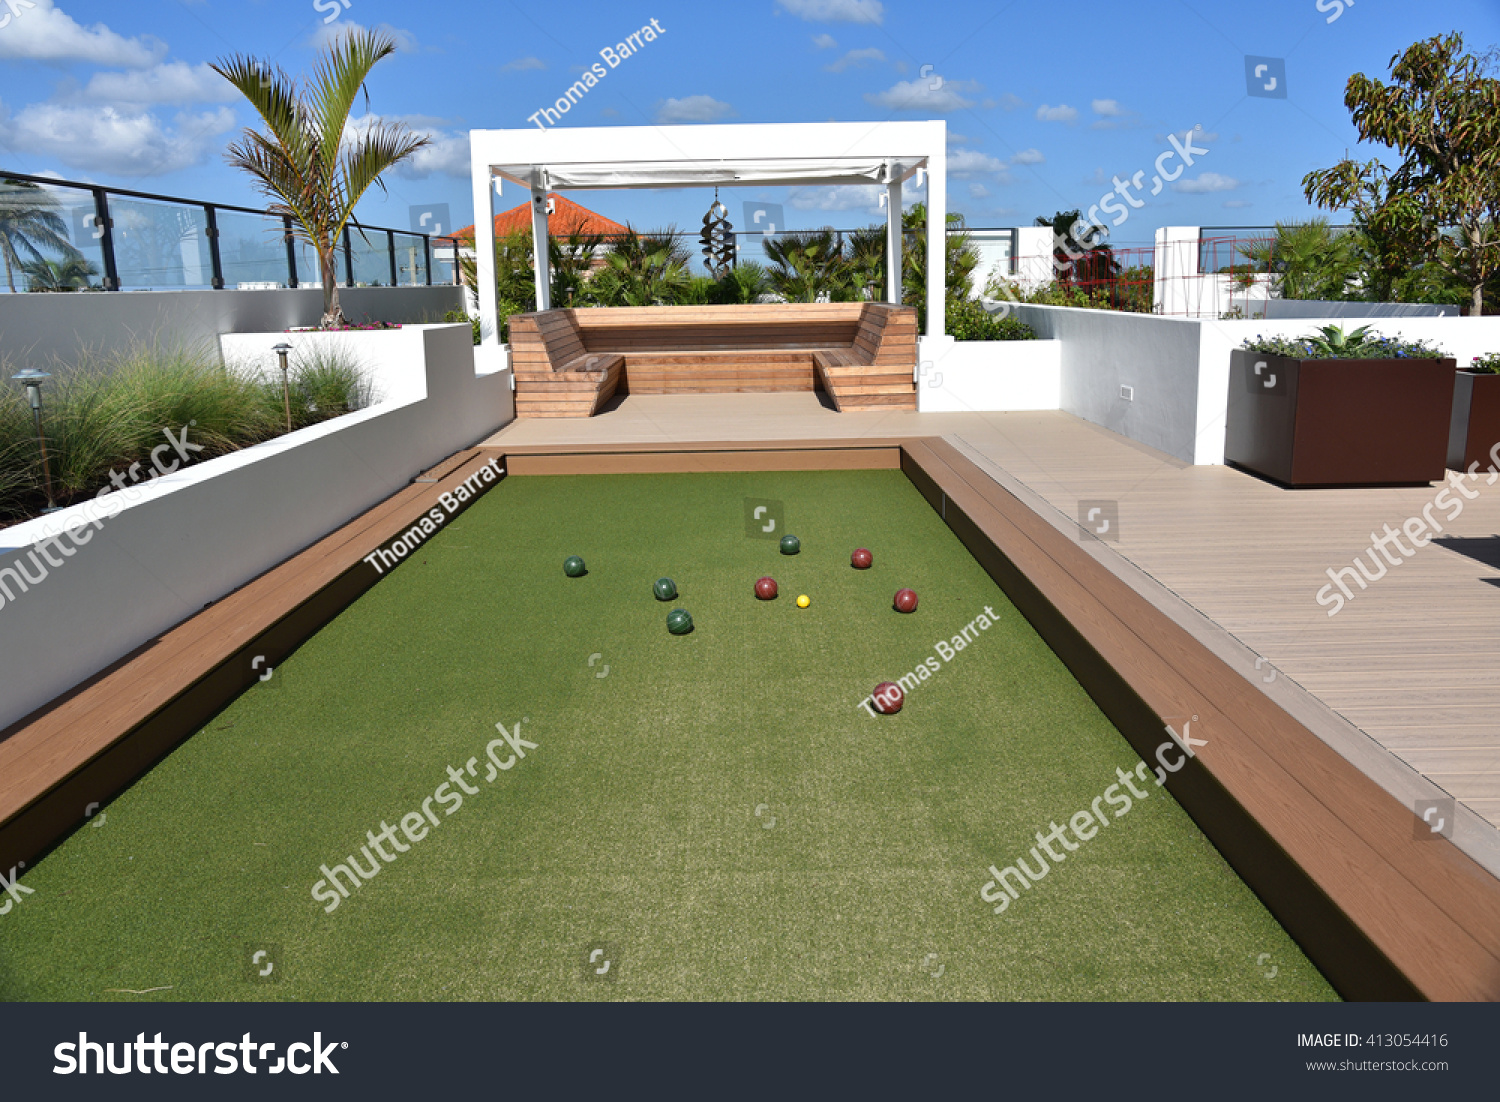 Build A Bocce Ball Court texas star dining room table round dining ...